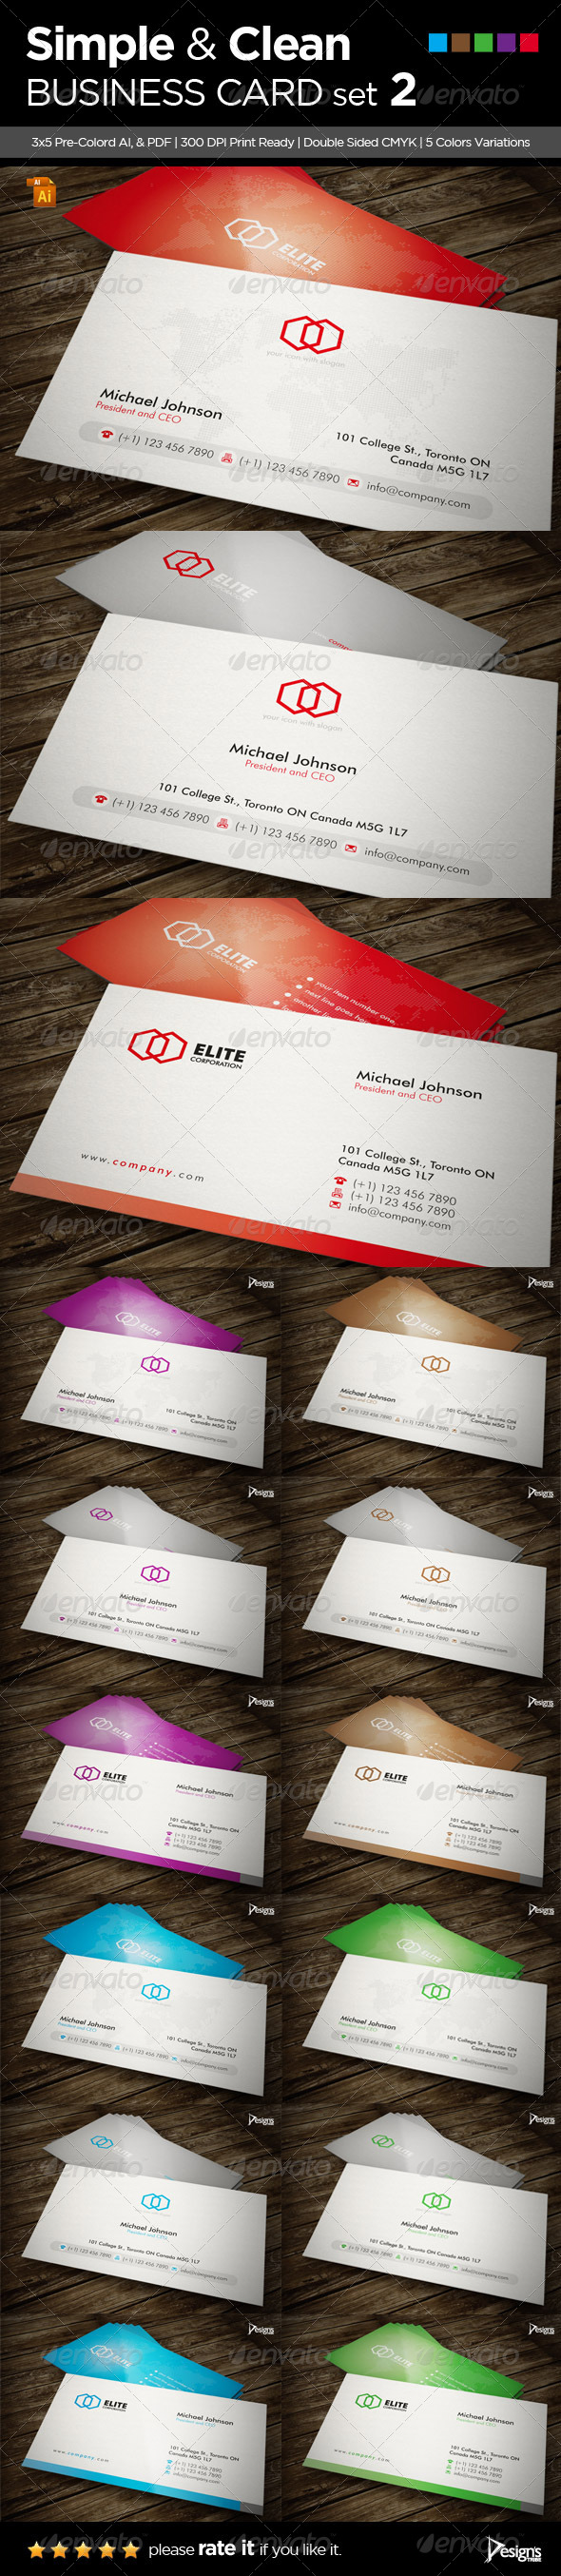 3in1 Simple and Clean Business Card - Corporate Business Cards